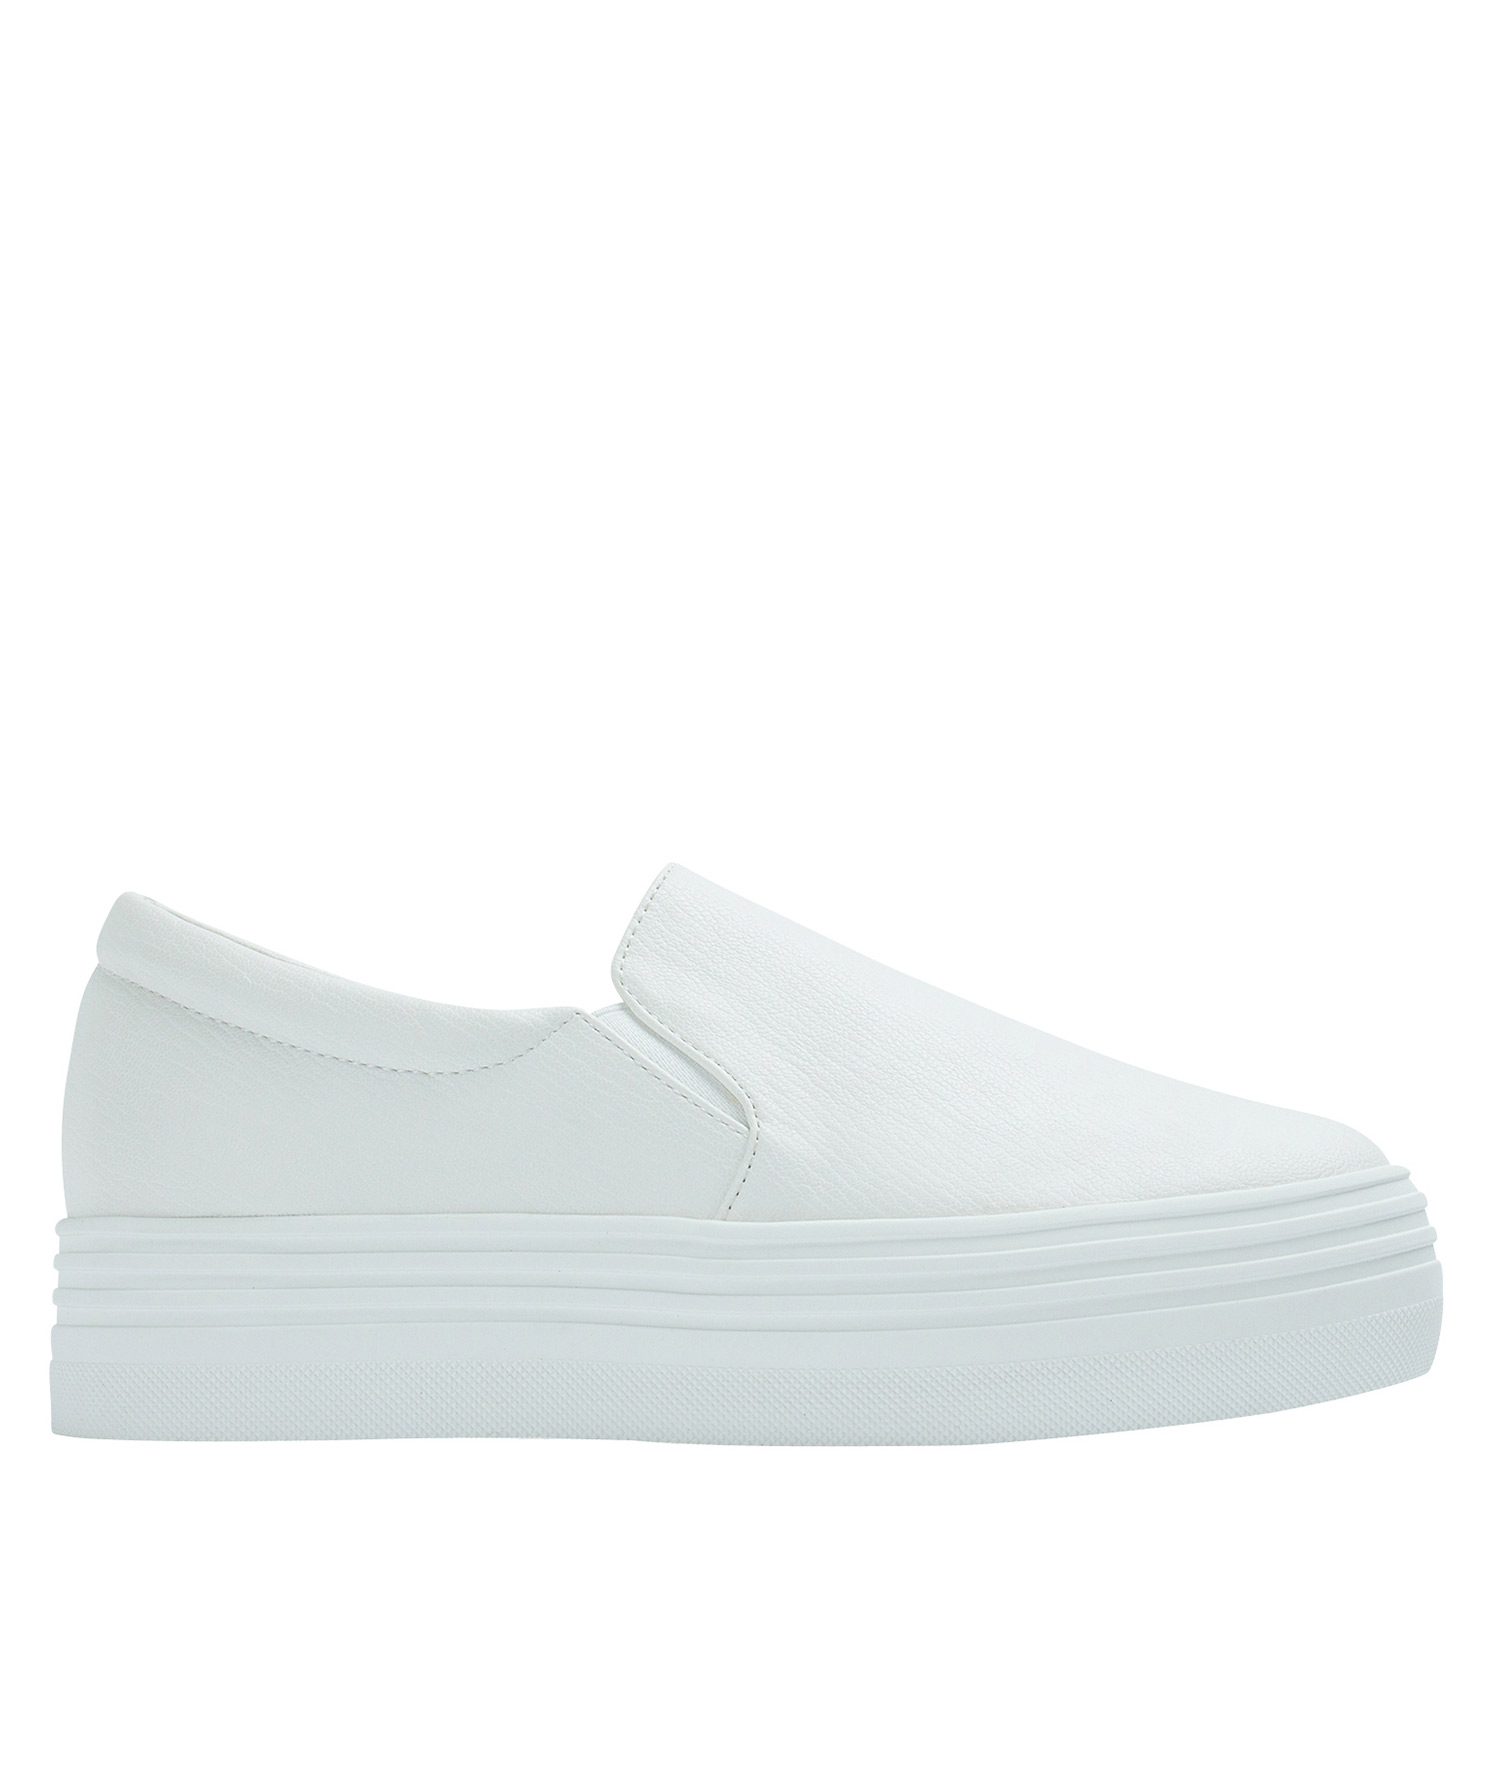 Slip On White Shoes Faux Leather  Womens Sneaker